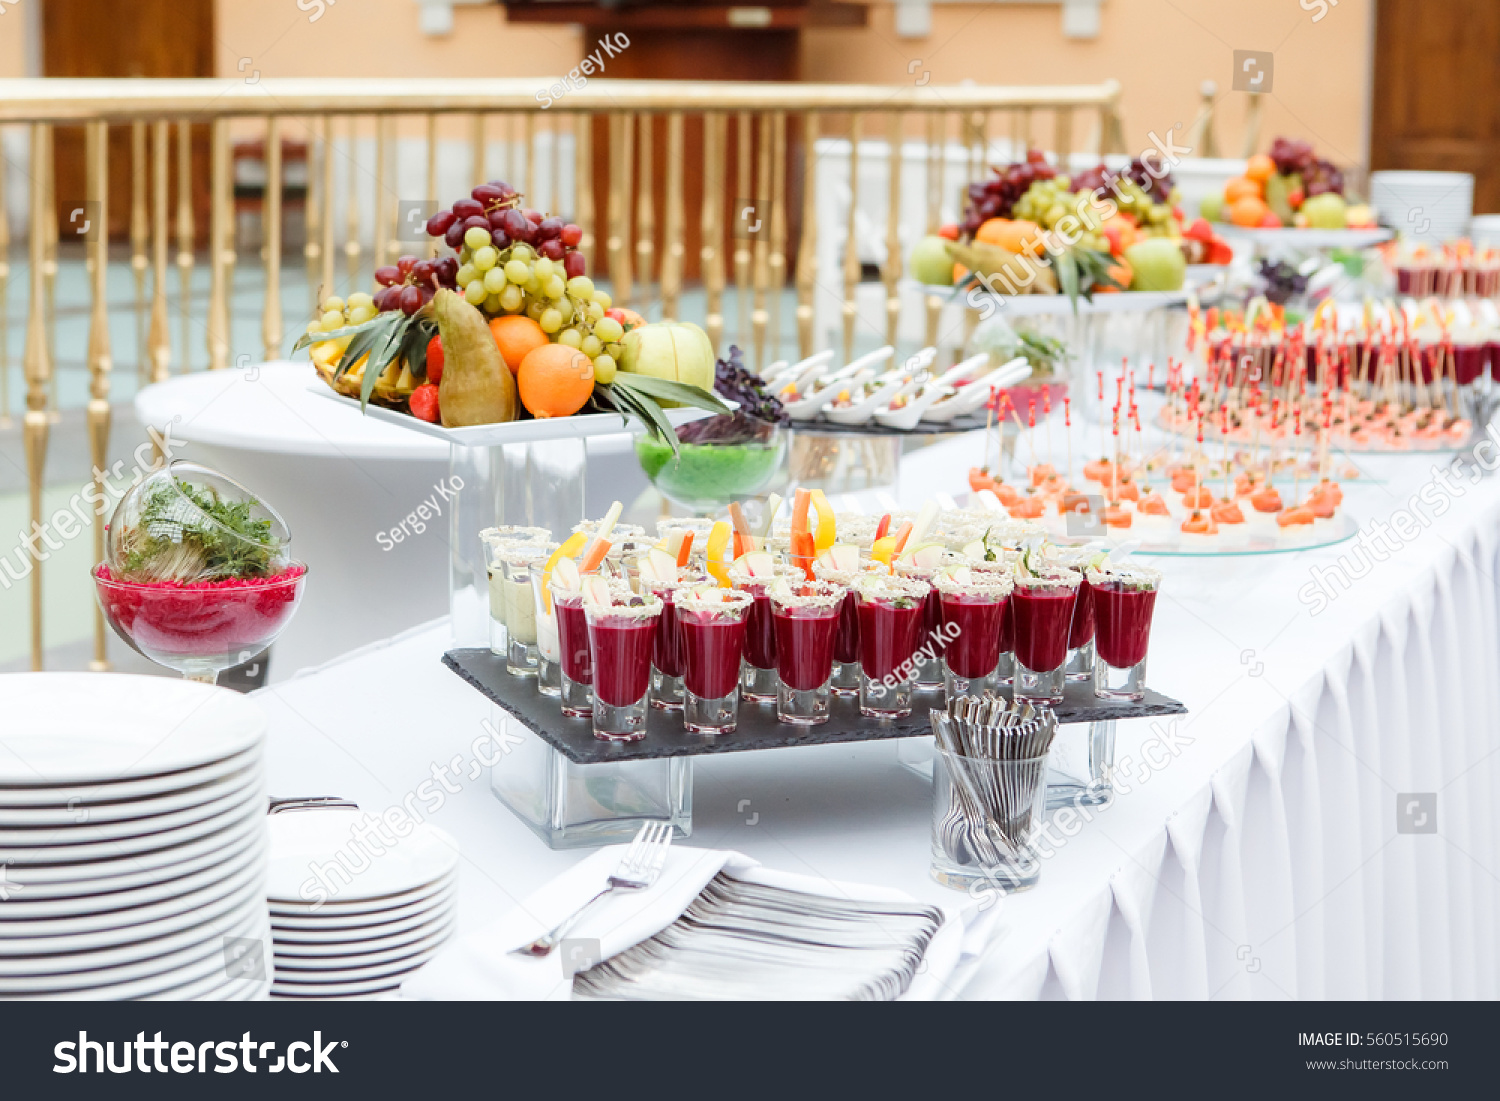 Catering canape fruits zdj cie stockowe 560515690 for Canape reception